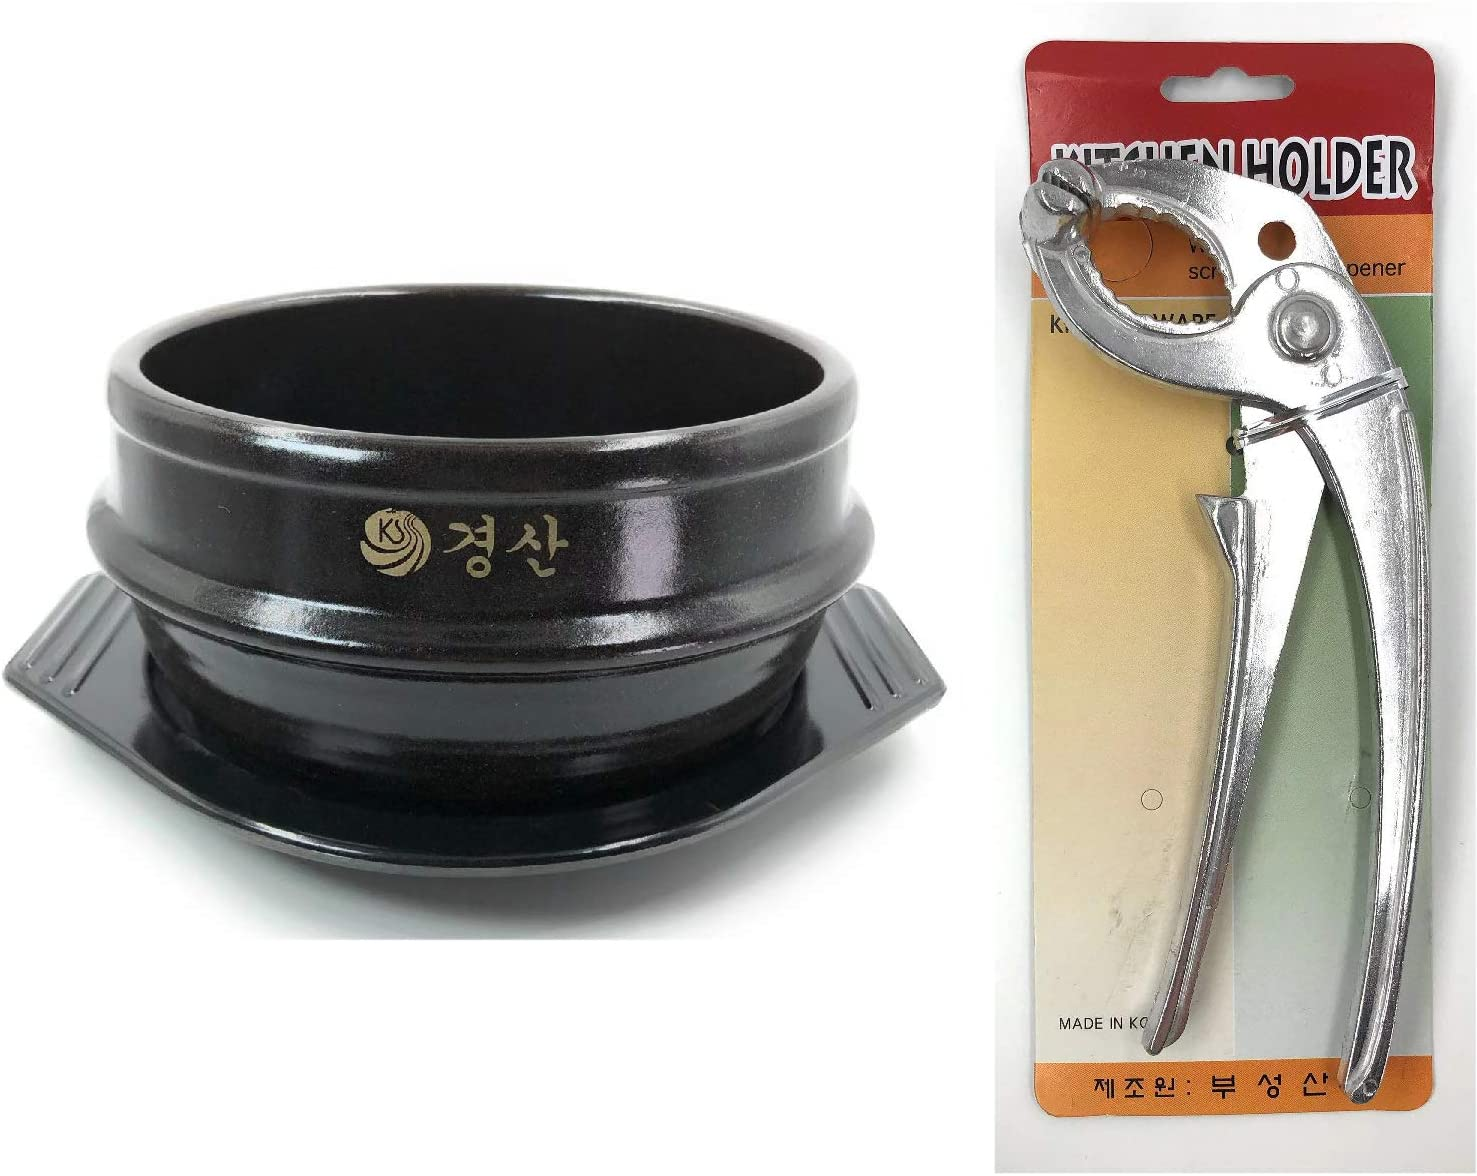 Jovely Korean Cooking Stone Bowl(Dolsot or Ddukbaegi), Diameter 6.3'' High 2.95'', Sizzling Hot Pot for Bibimbap and Soup with Premium Ceramic Tray and Special Bowl Tongs